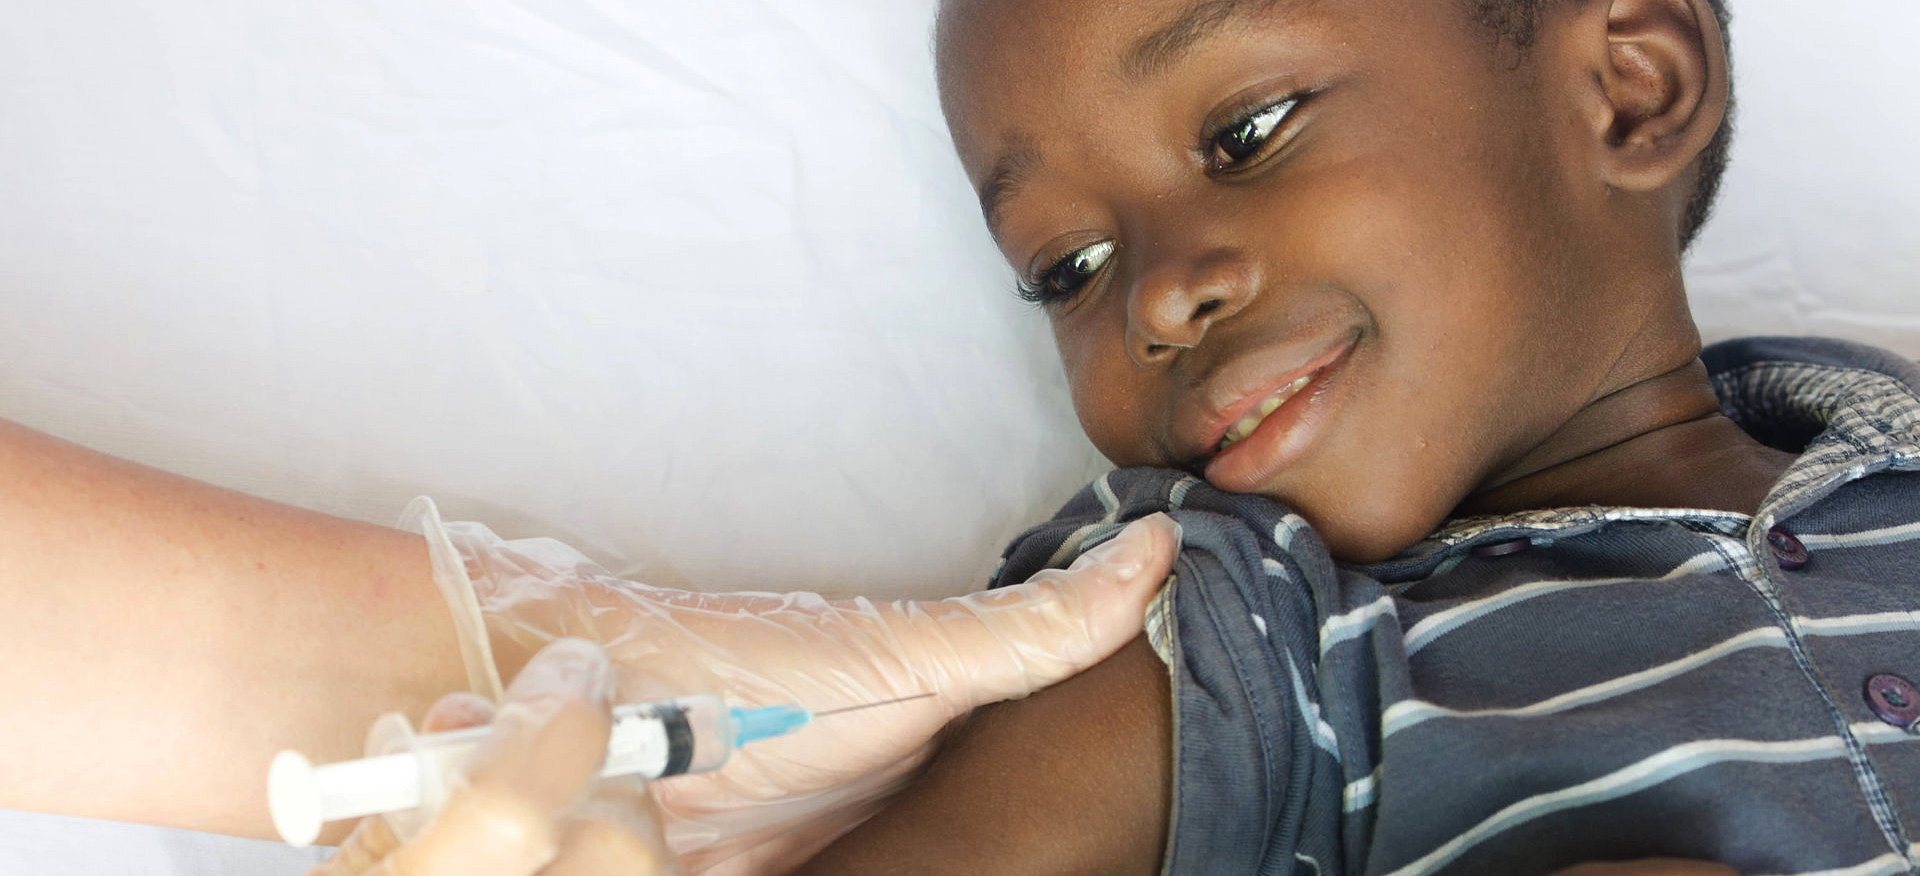 a kid gets injected